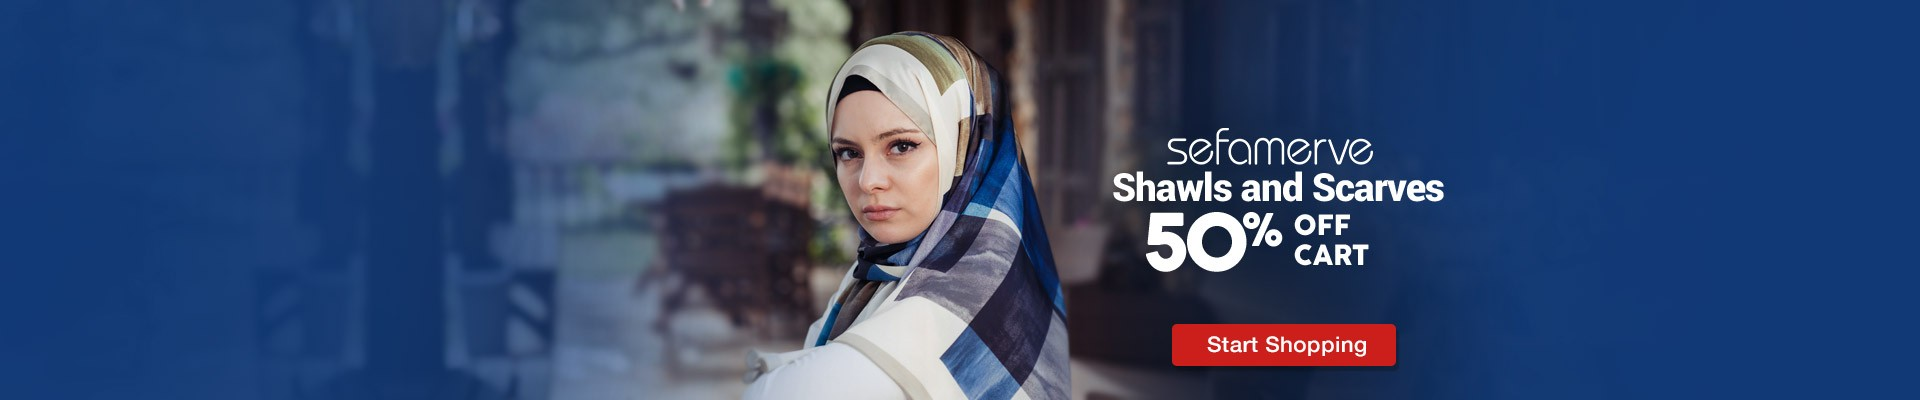 50% Off Cart on Shawls and Scarves